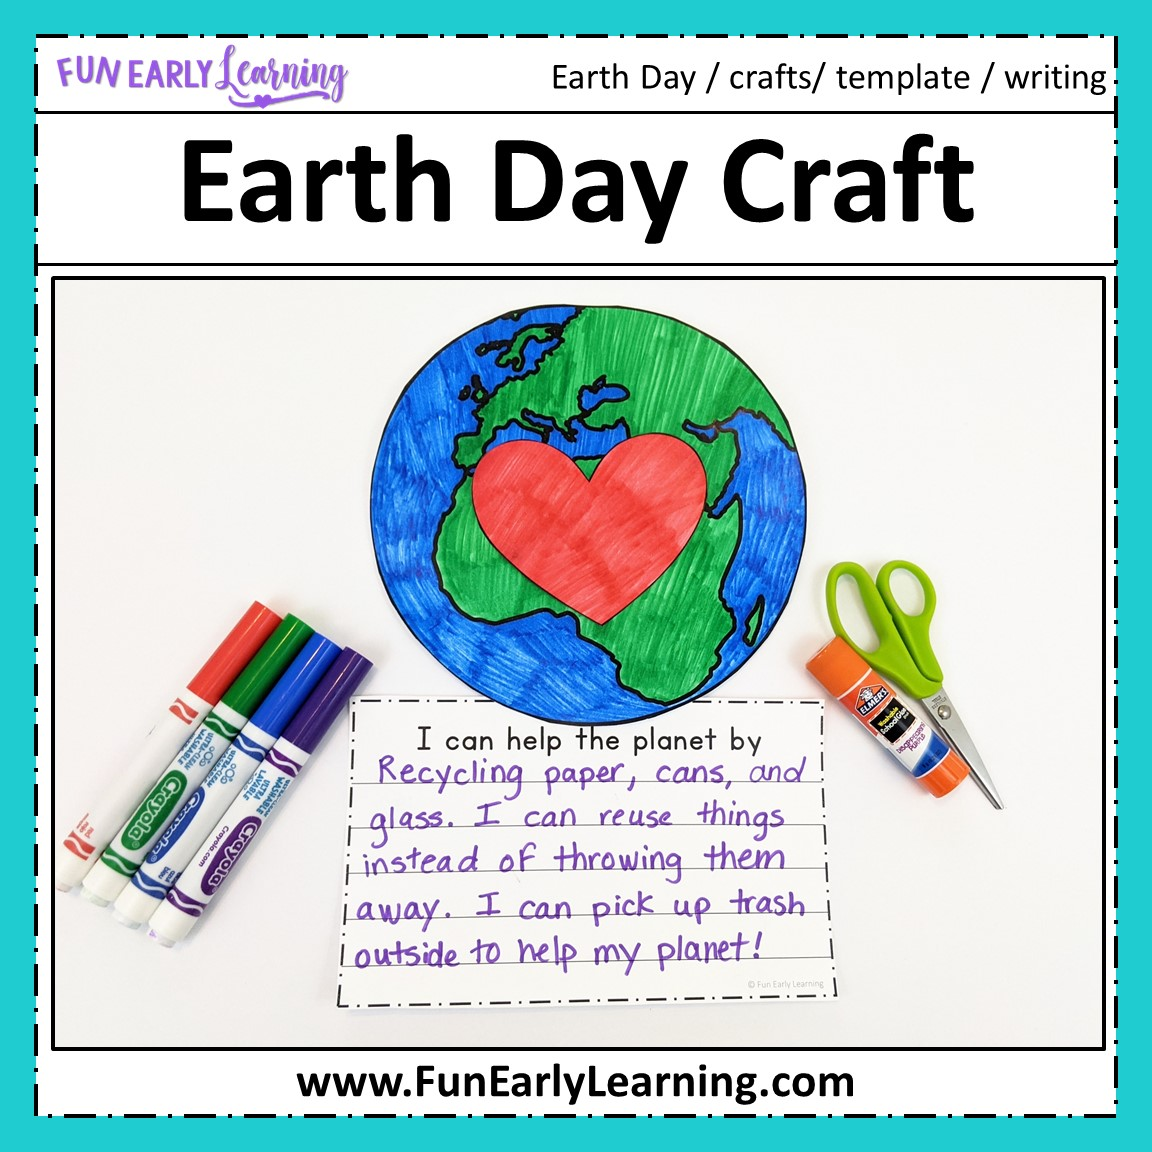 Earth Day Craft And Writing Prompts For Preschool And Kindergarten